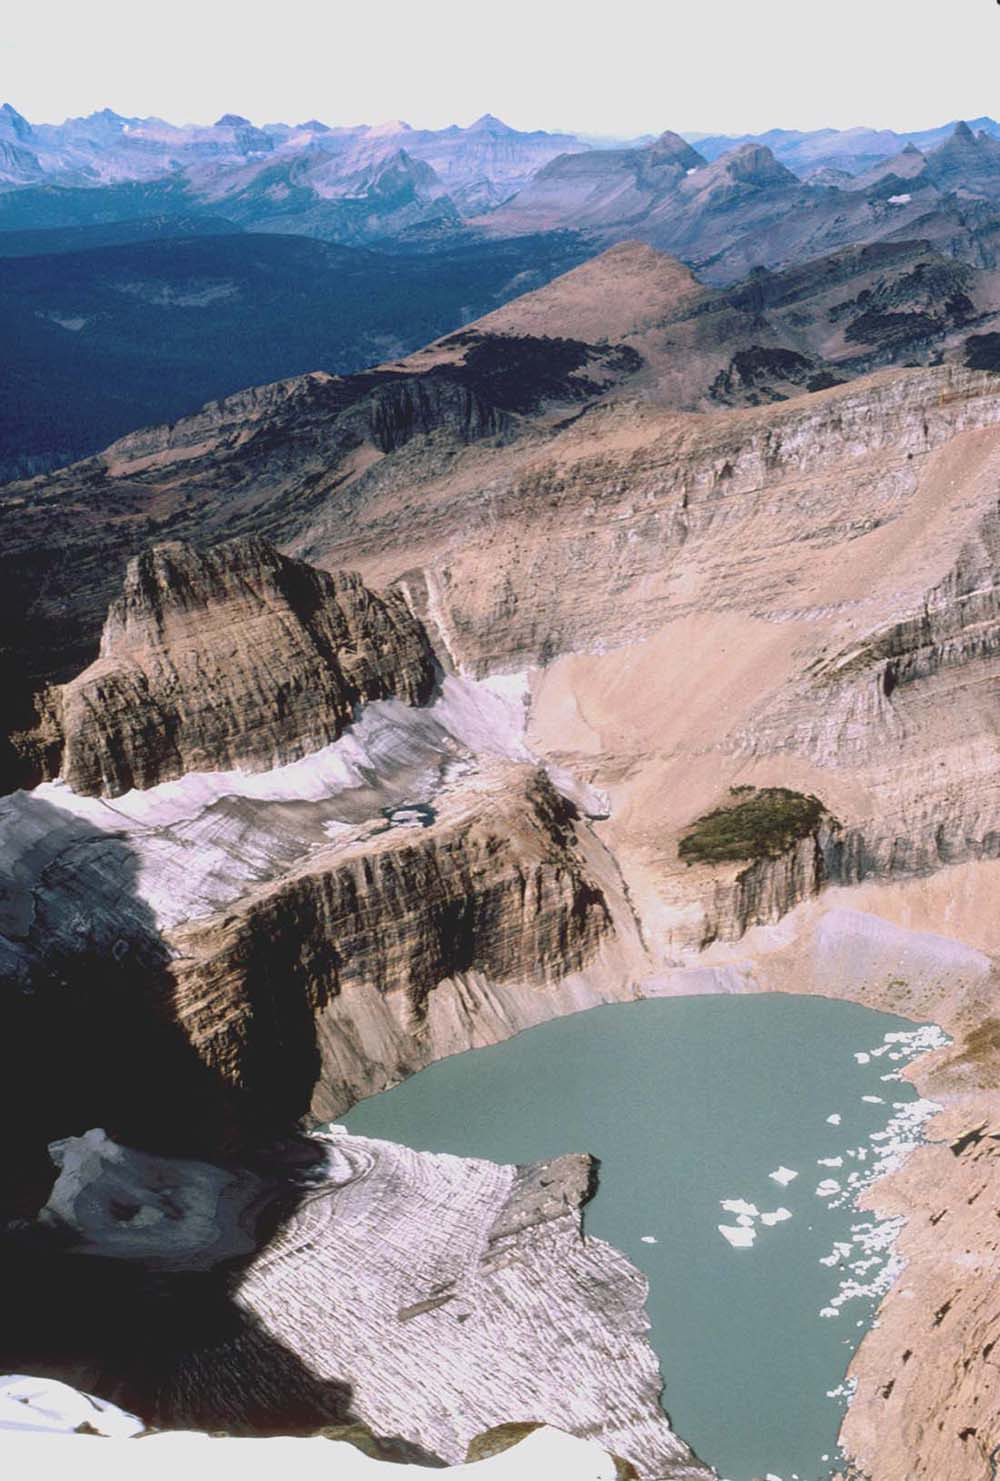 Grinnell Glacier in Glacier National Park (US) in 1998